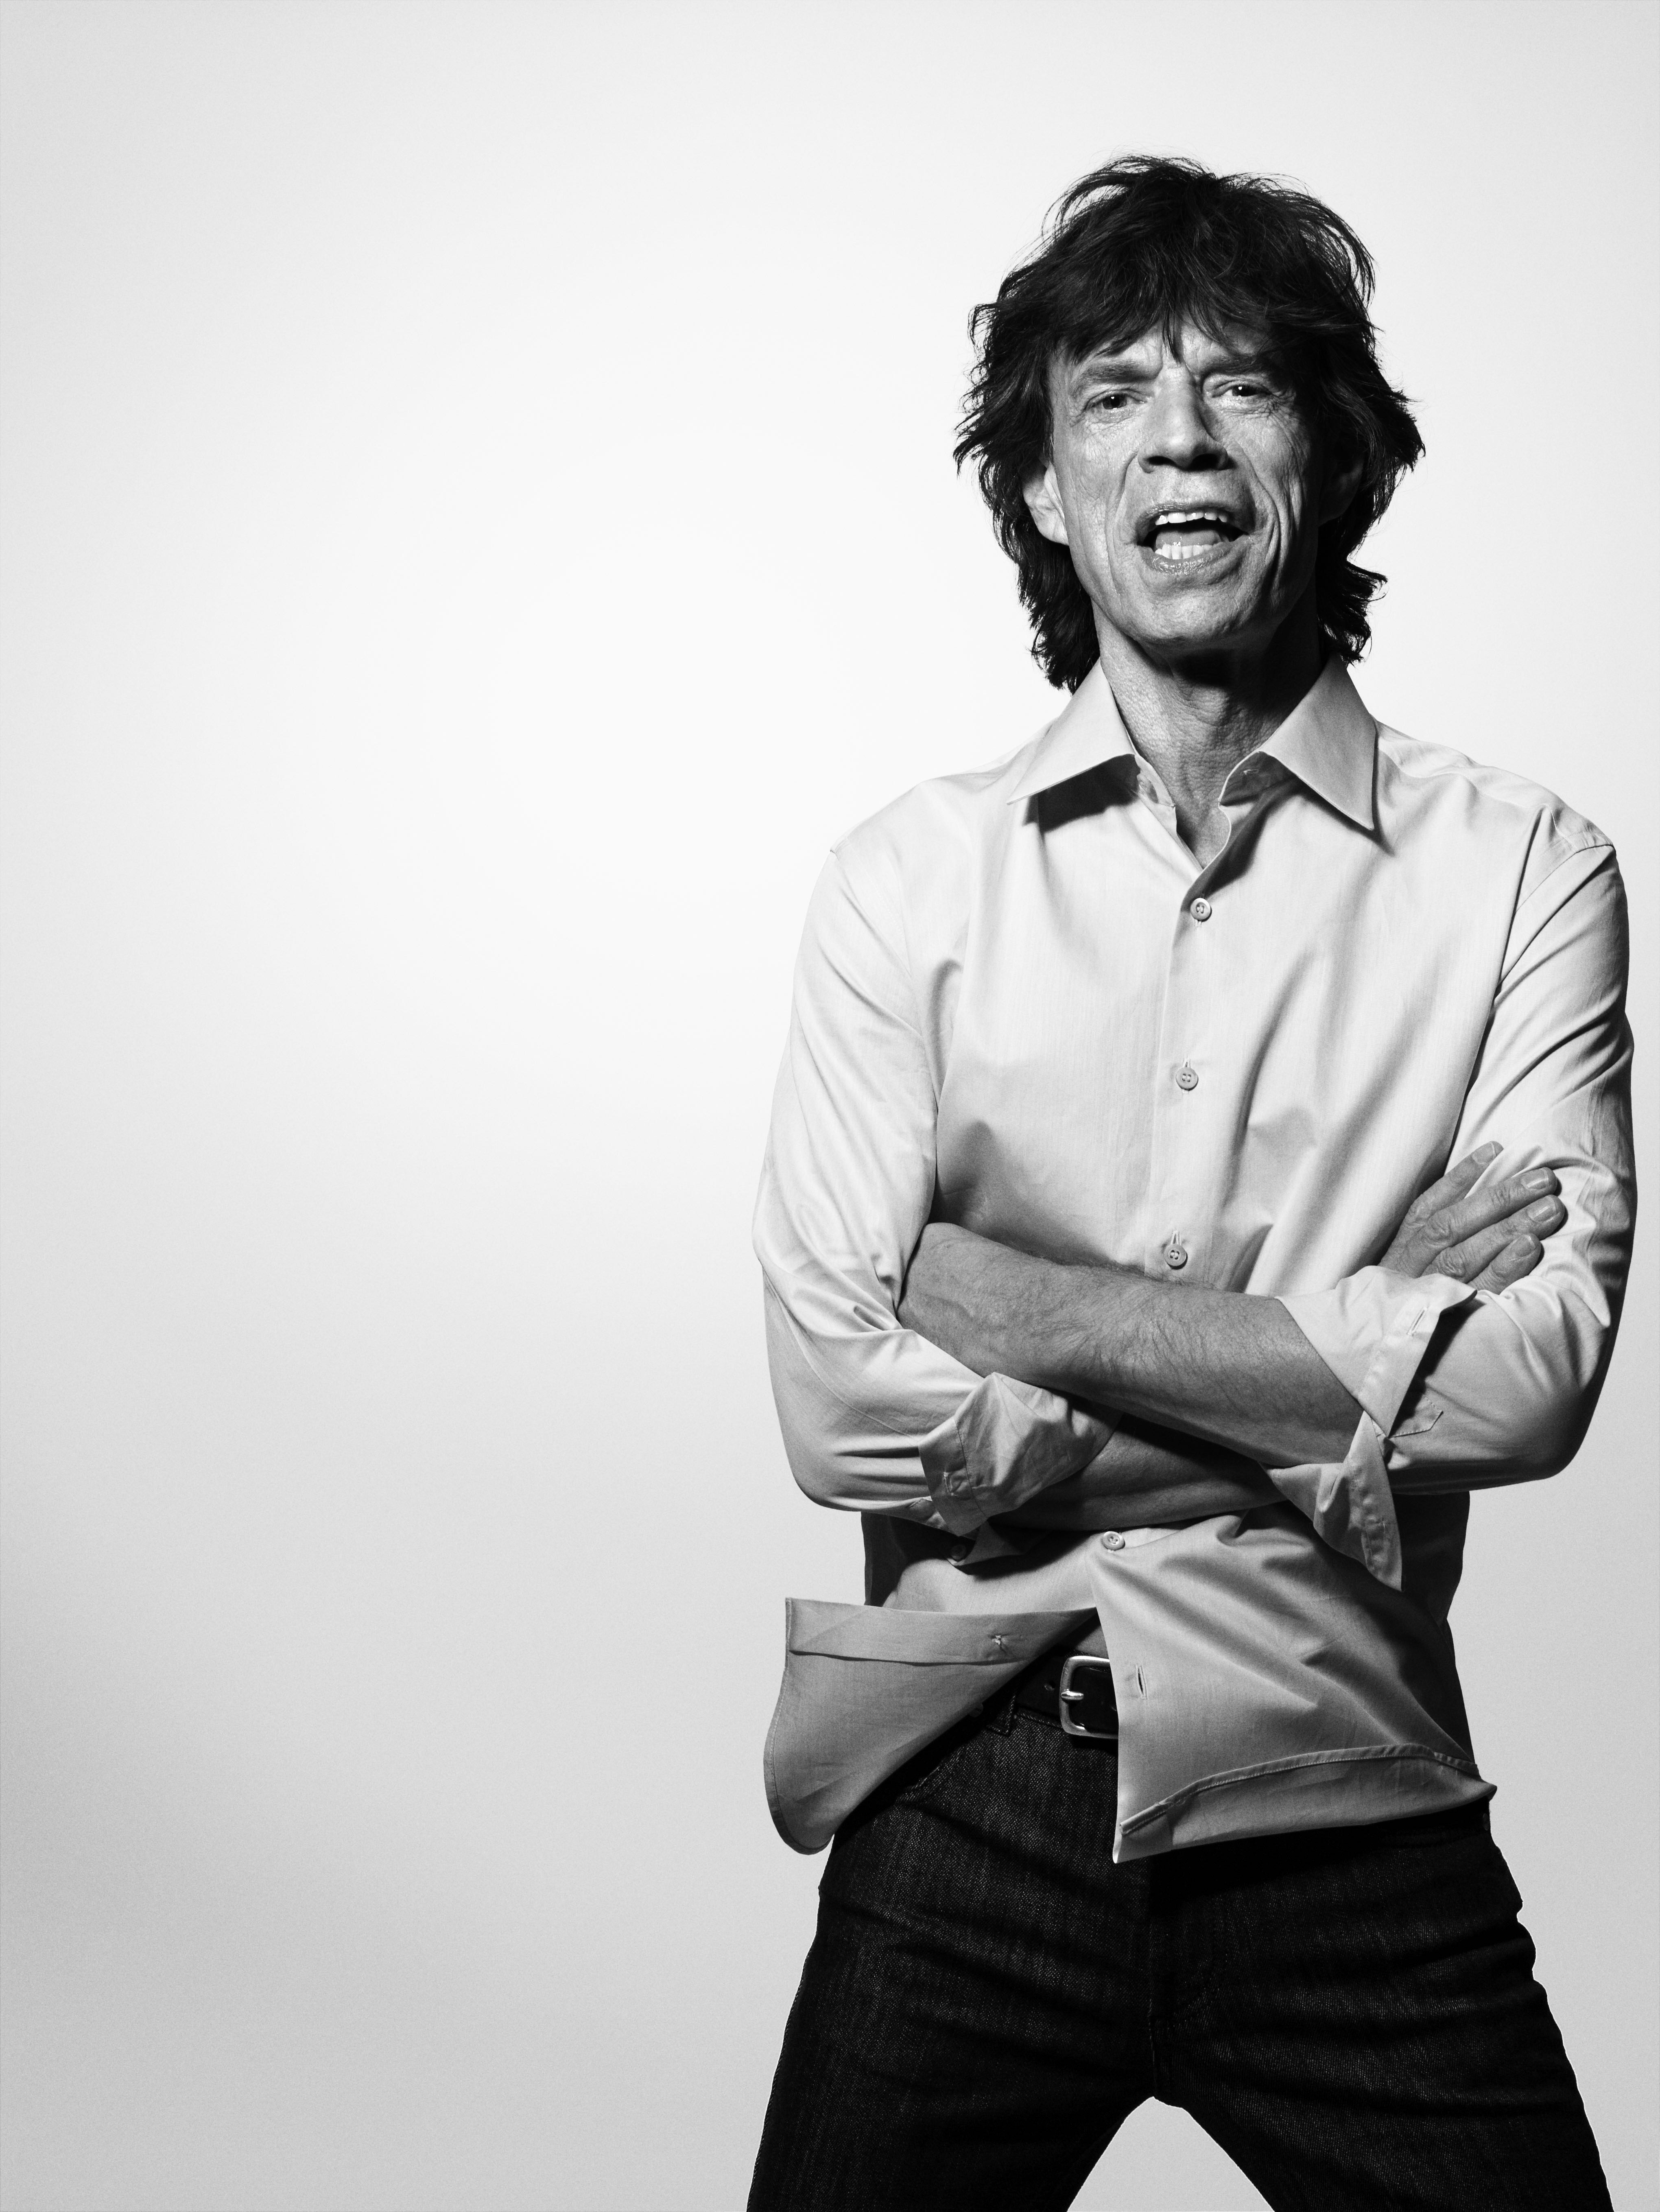 Mick Jagger Releases Two New Singles England Lost Gotta Get a grip